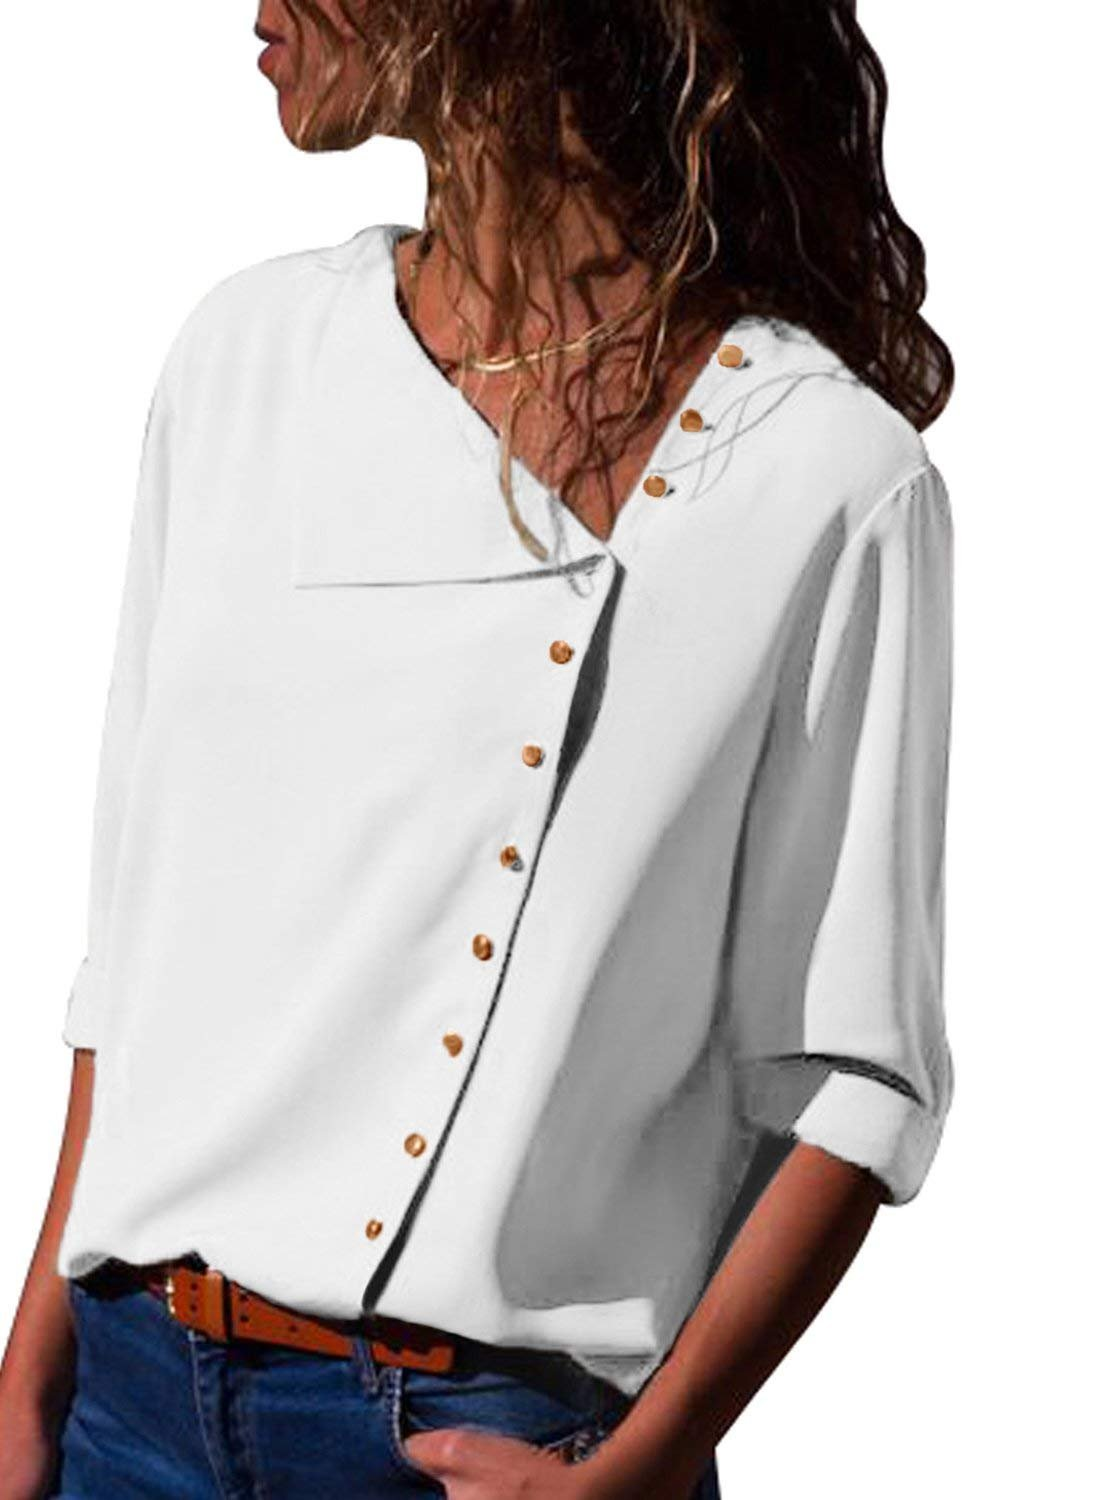 BETTE BOUTIK Women's Slanted Cardigan Sheath Fitting Blouses Button Up Shirts White Small